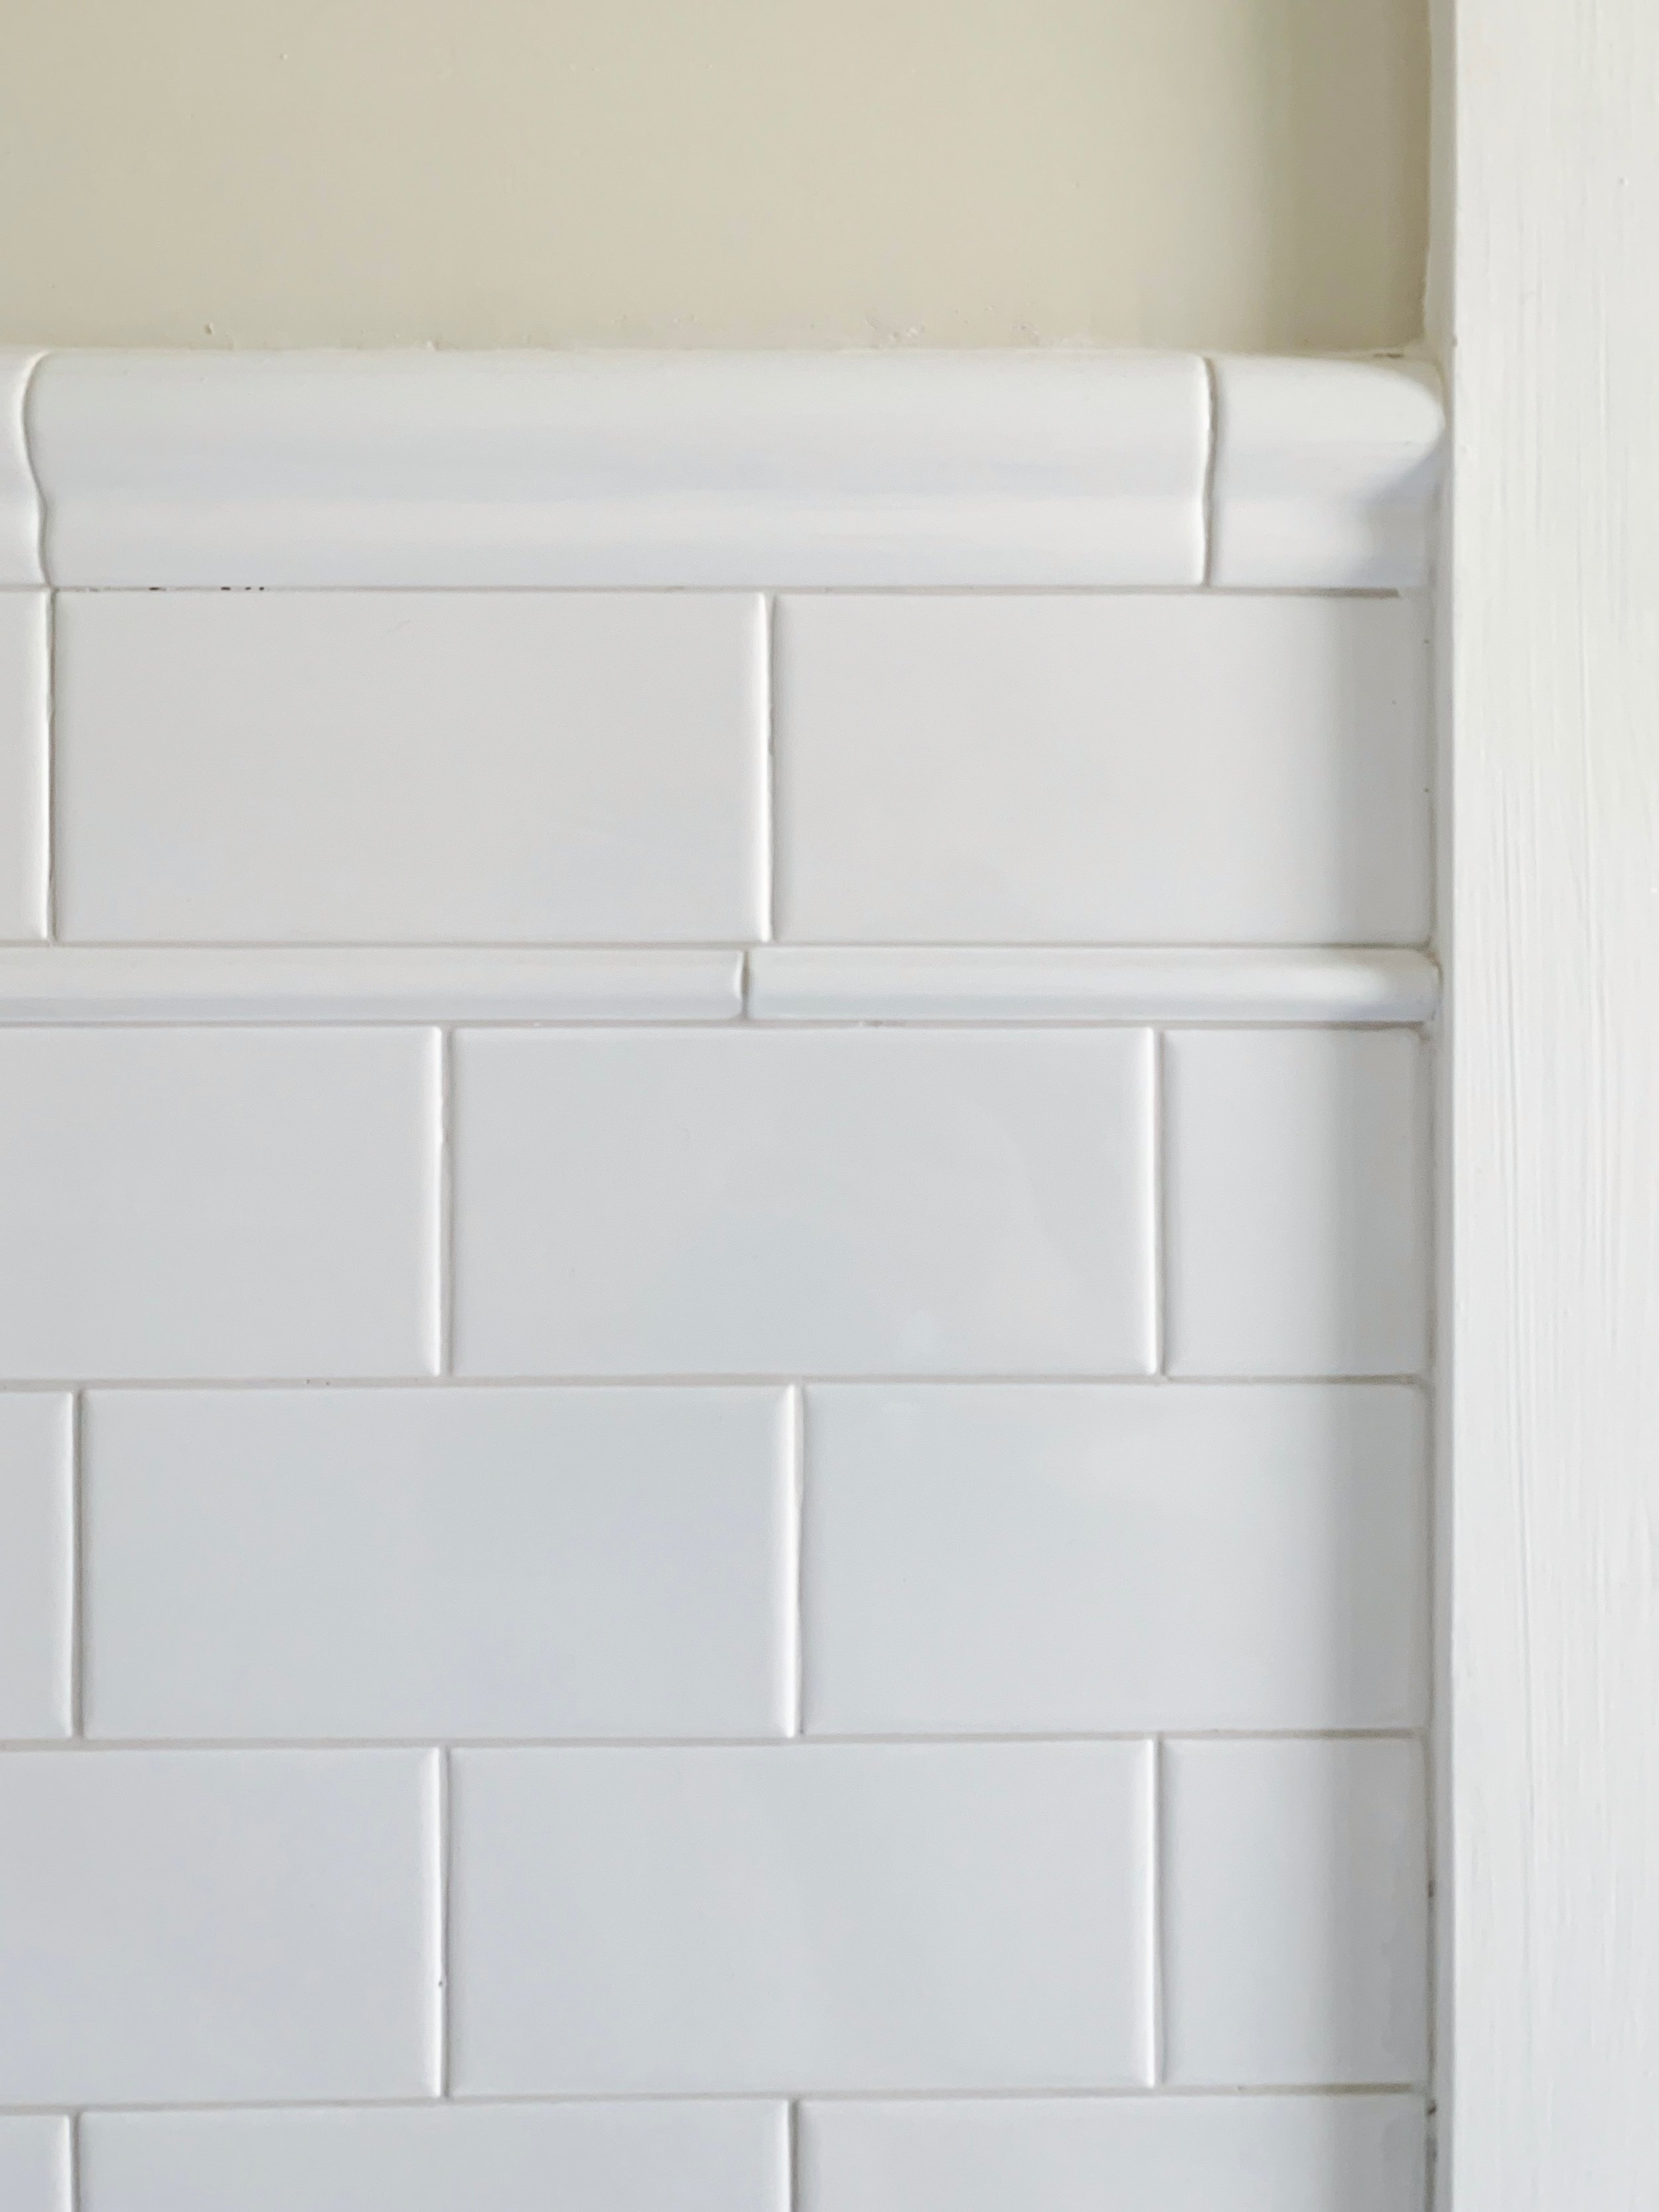 Subway wall tile  |  Pencil tile  |  Chair rail  |  Base cove tile  |  Grout: Mapei FROST unsanded grout